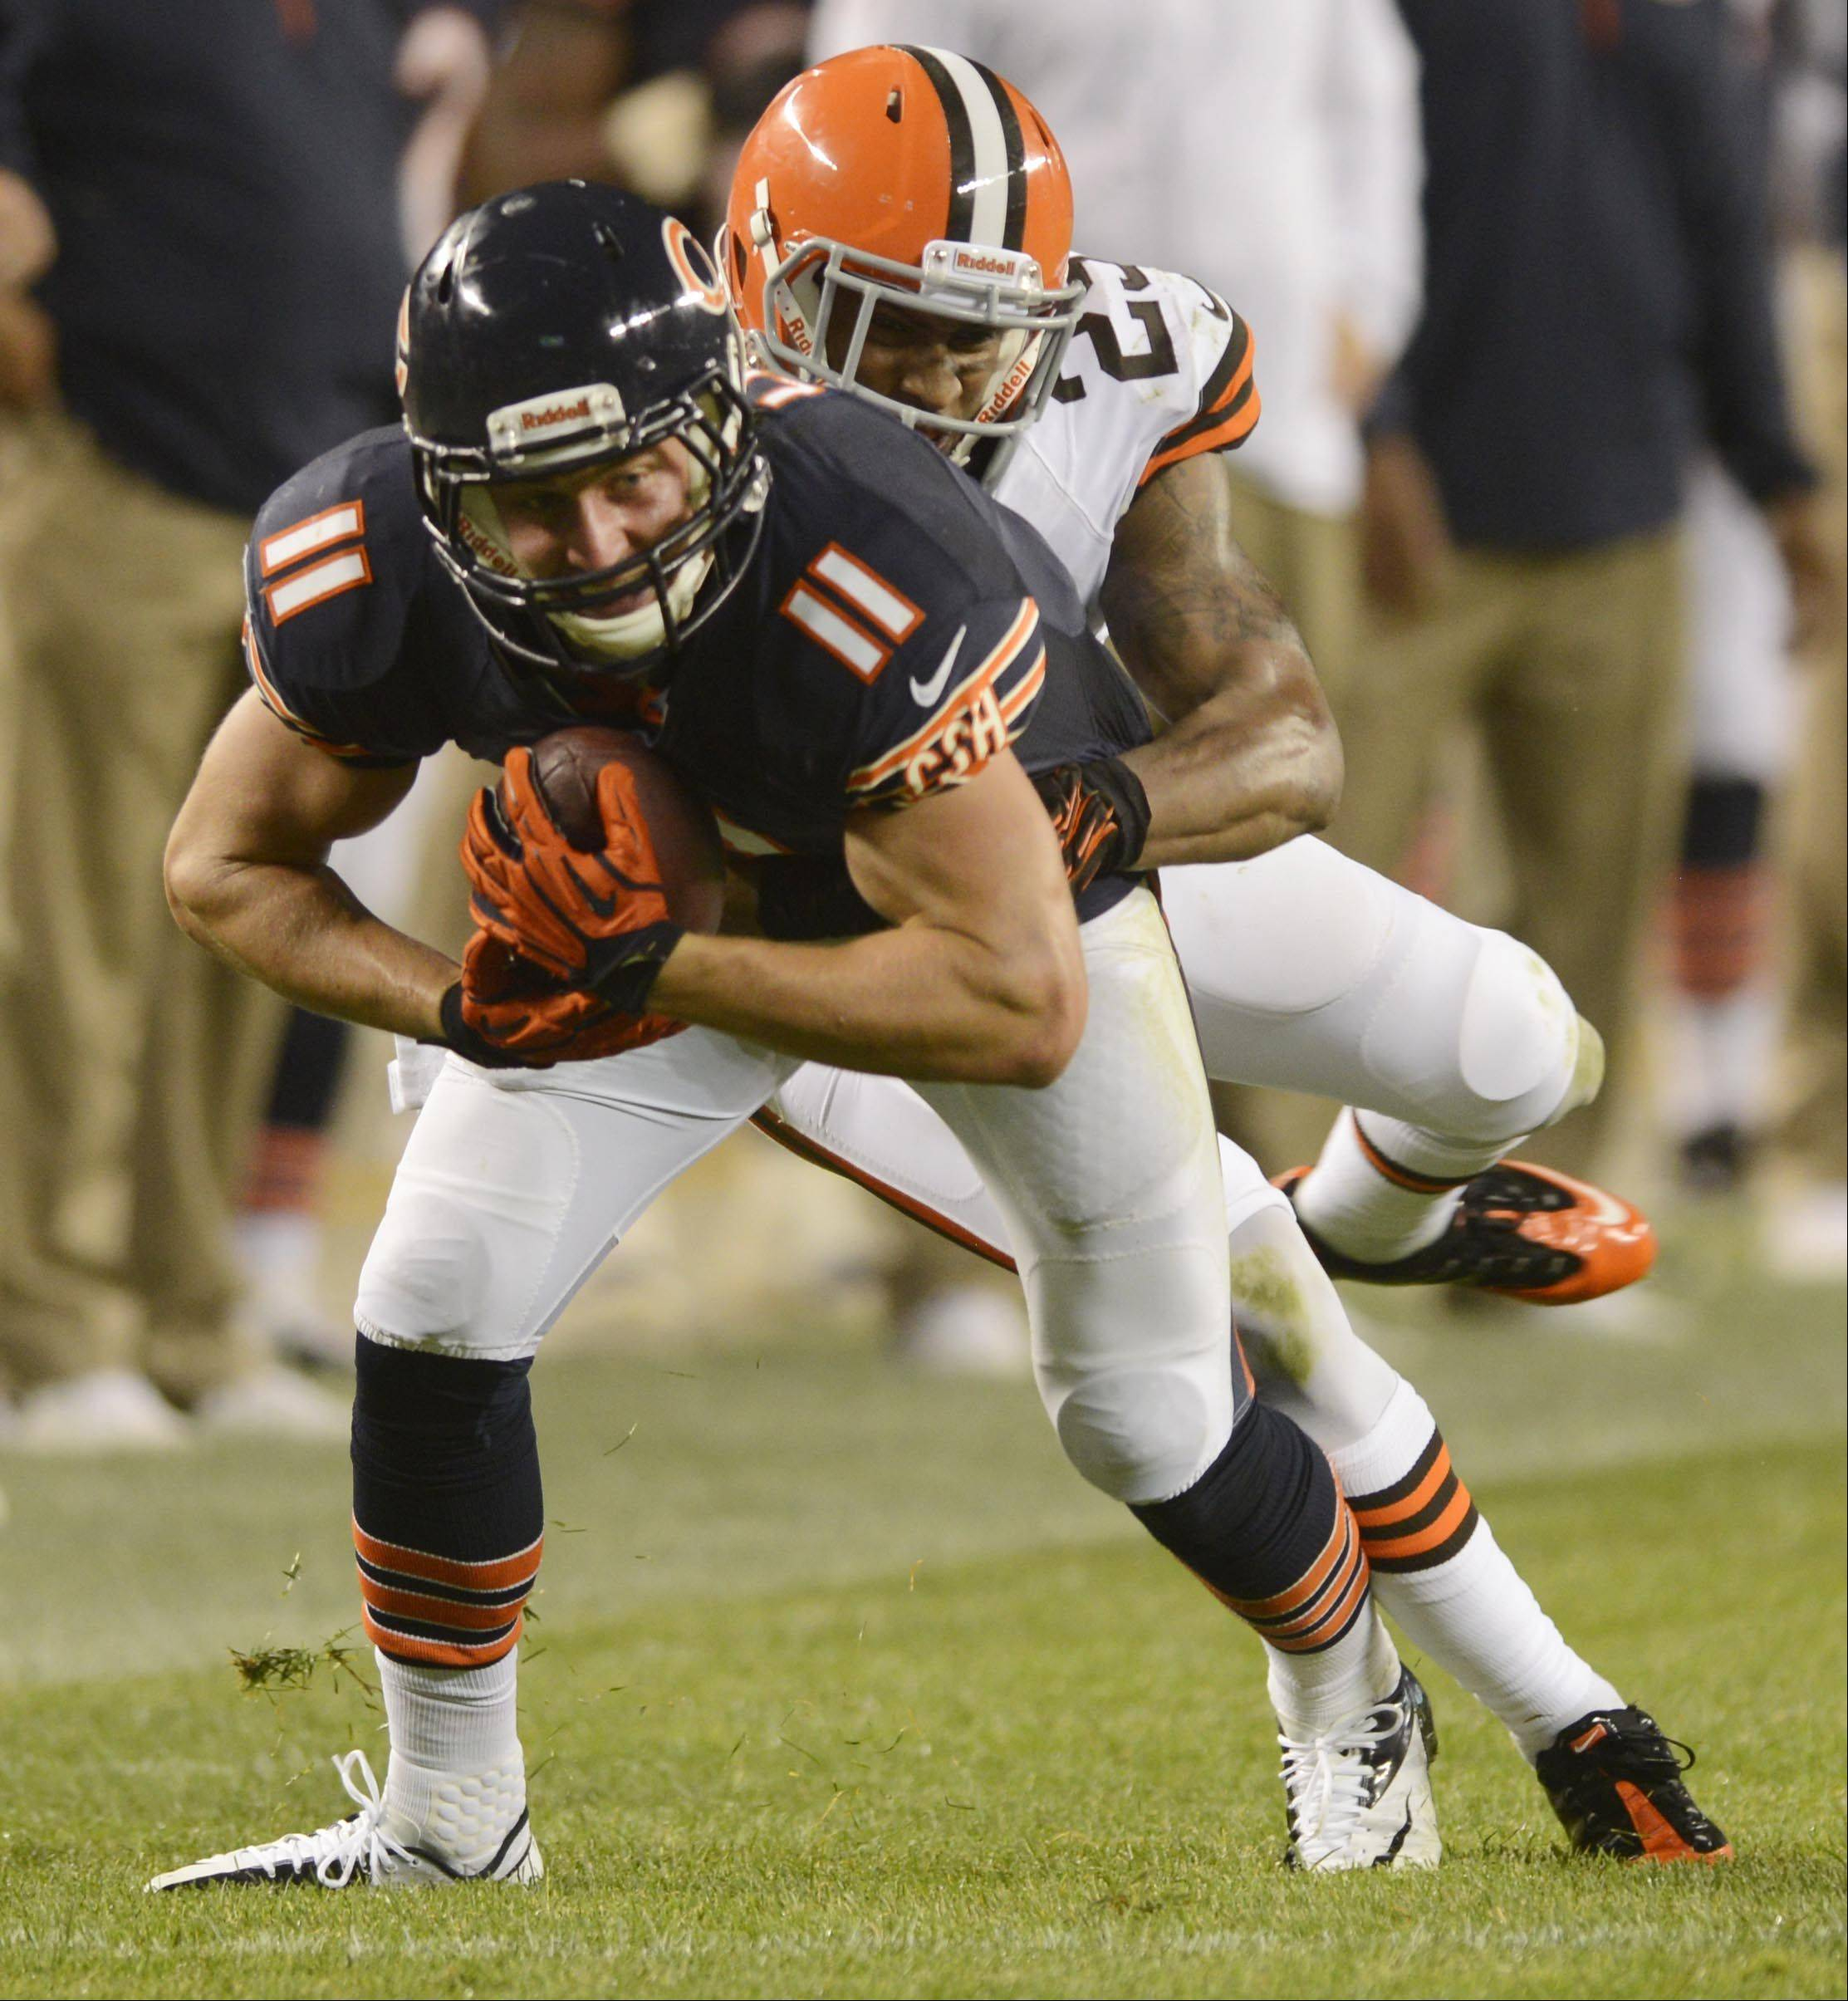 Chicago Bears wide receiver Josh Lenz turns after catching a pass against the Cleveland Browns.